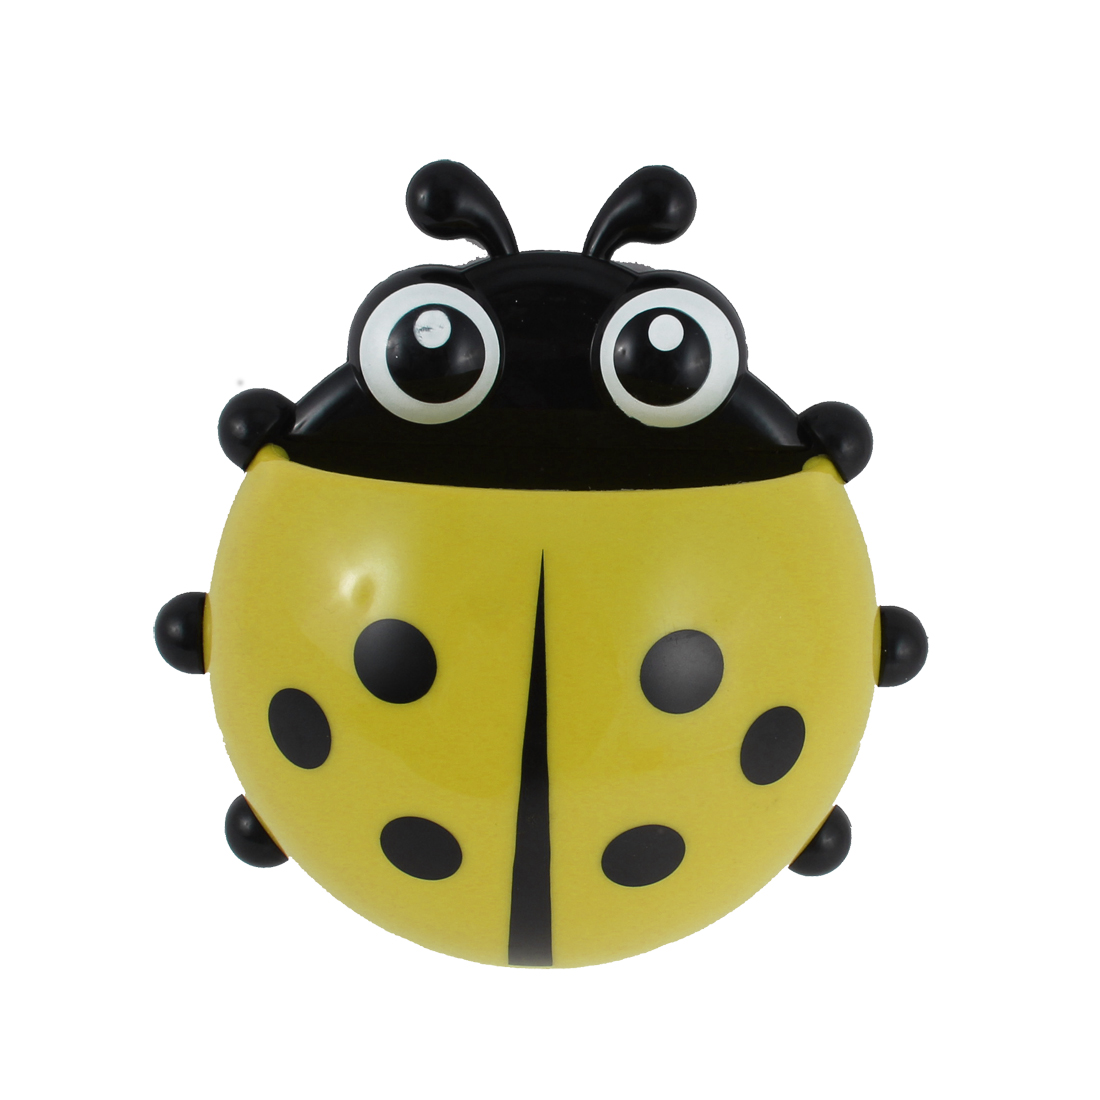 Plastic Suction Stand Ladybird Design Toothbrush Rack Holder Yellow